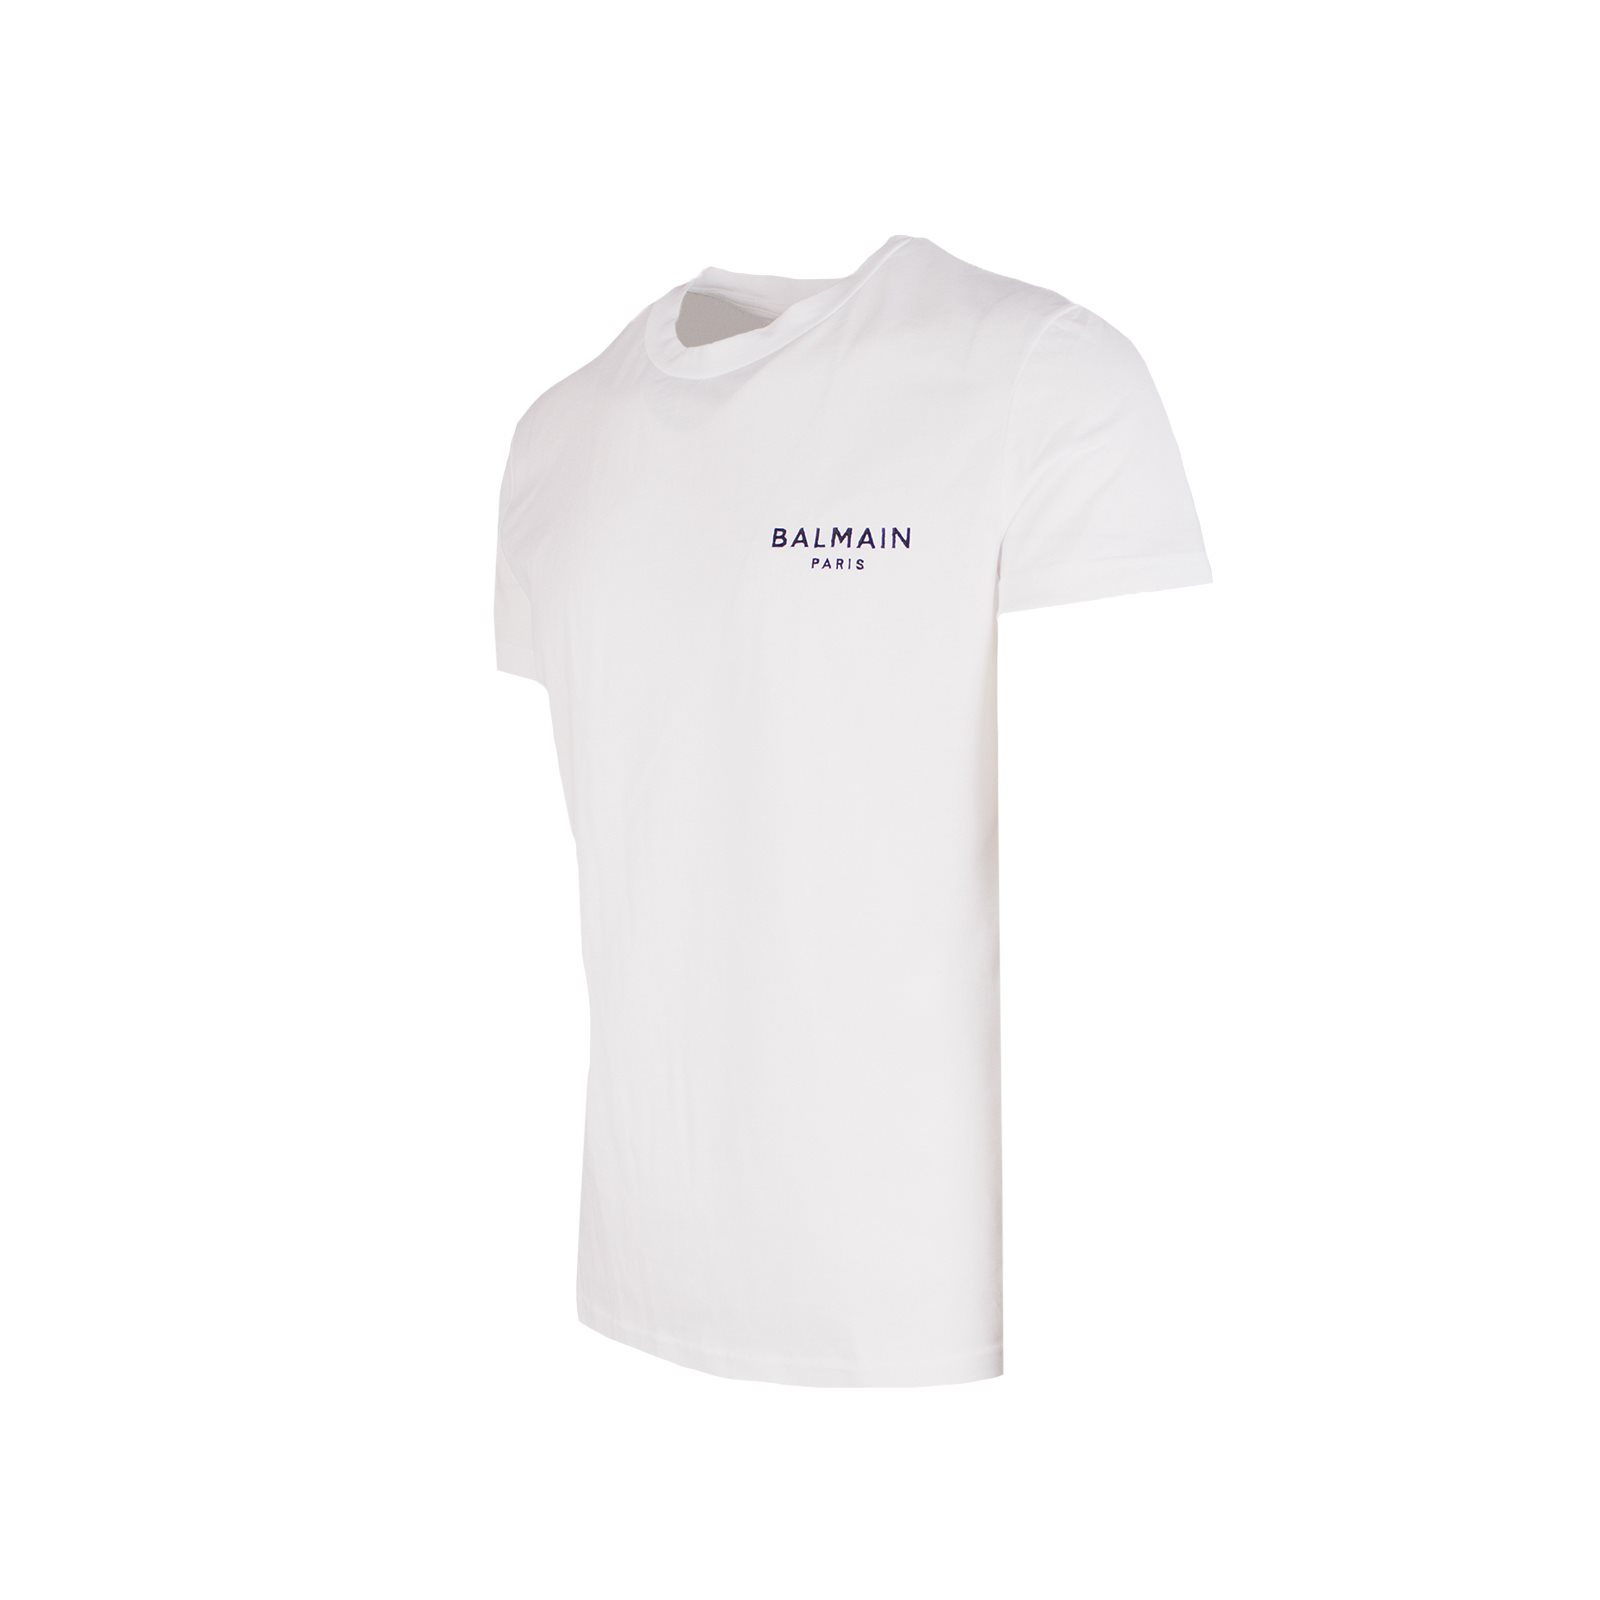 Balmain Paris T-Shirt 2